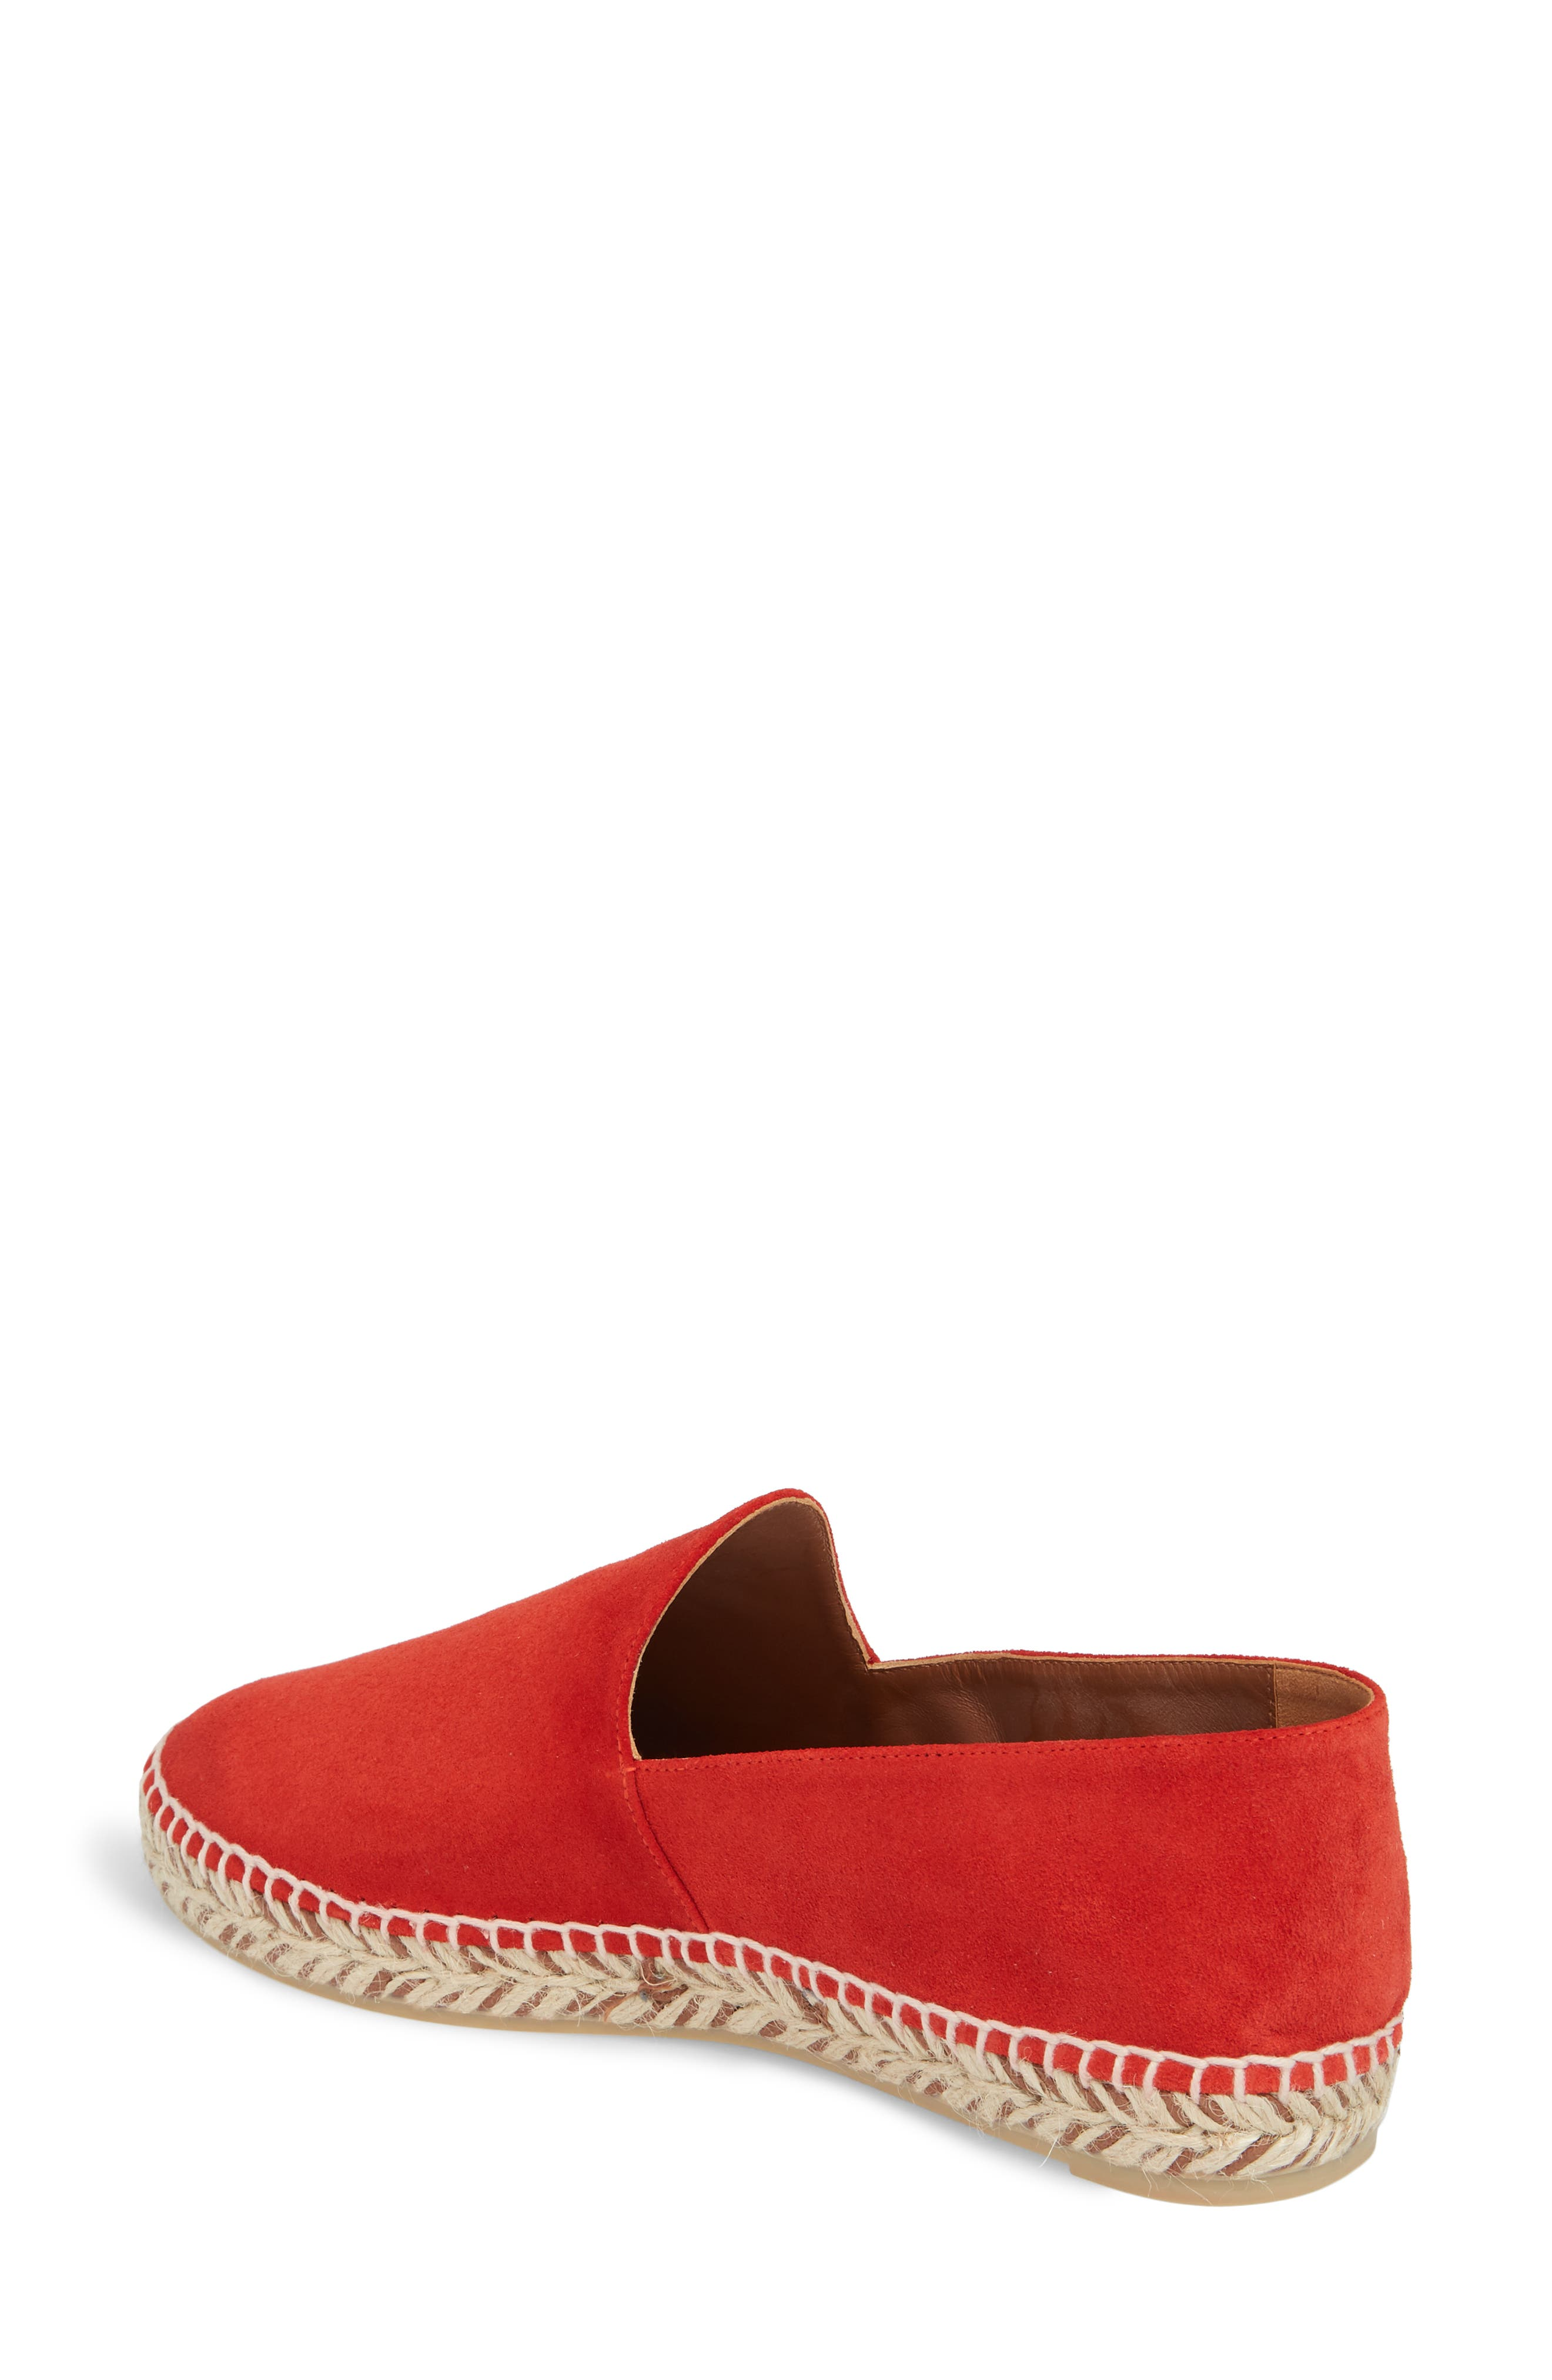 Haddie Espadrille Loafer,                             Alternate thumbnail 2, color,                             Red Suede